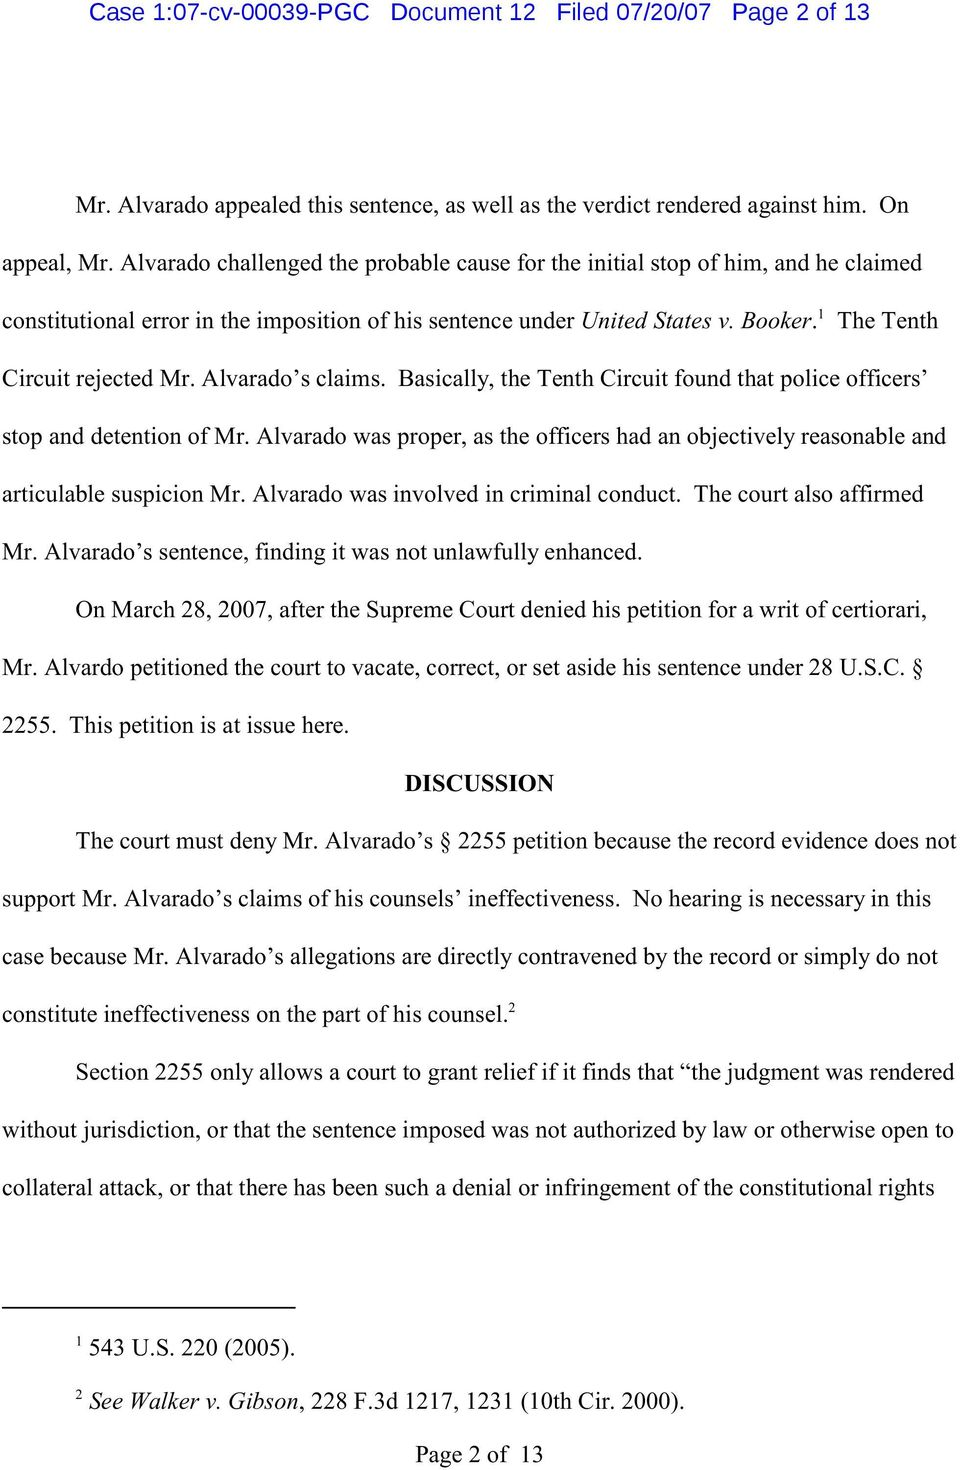 The Tenth Circuit rejected Mr. Alvarado s claims. Basically, the Tenth Circuit found that police officers stop and detention of Mr.